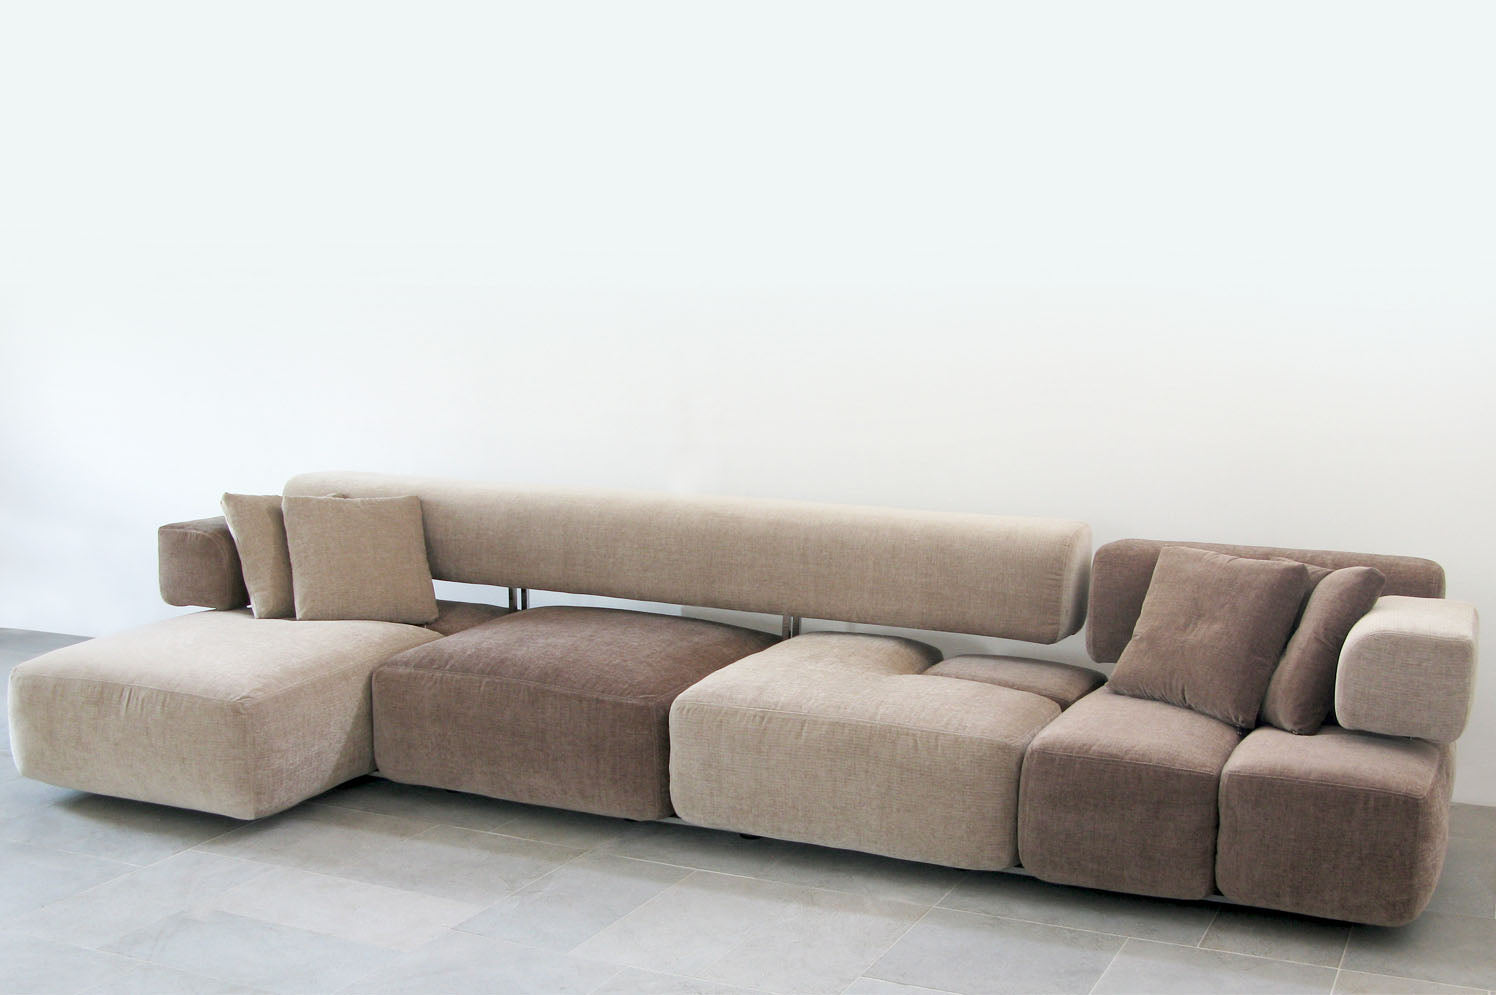 D3CO Domino versatile sofa eco friendly and sustainable plastic free